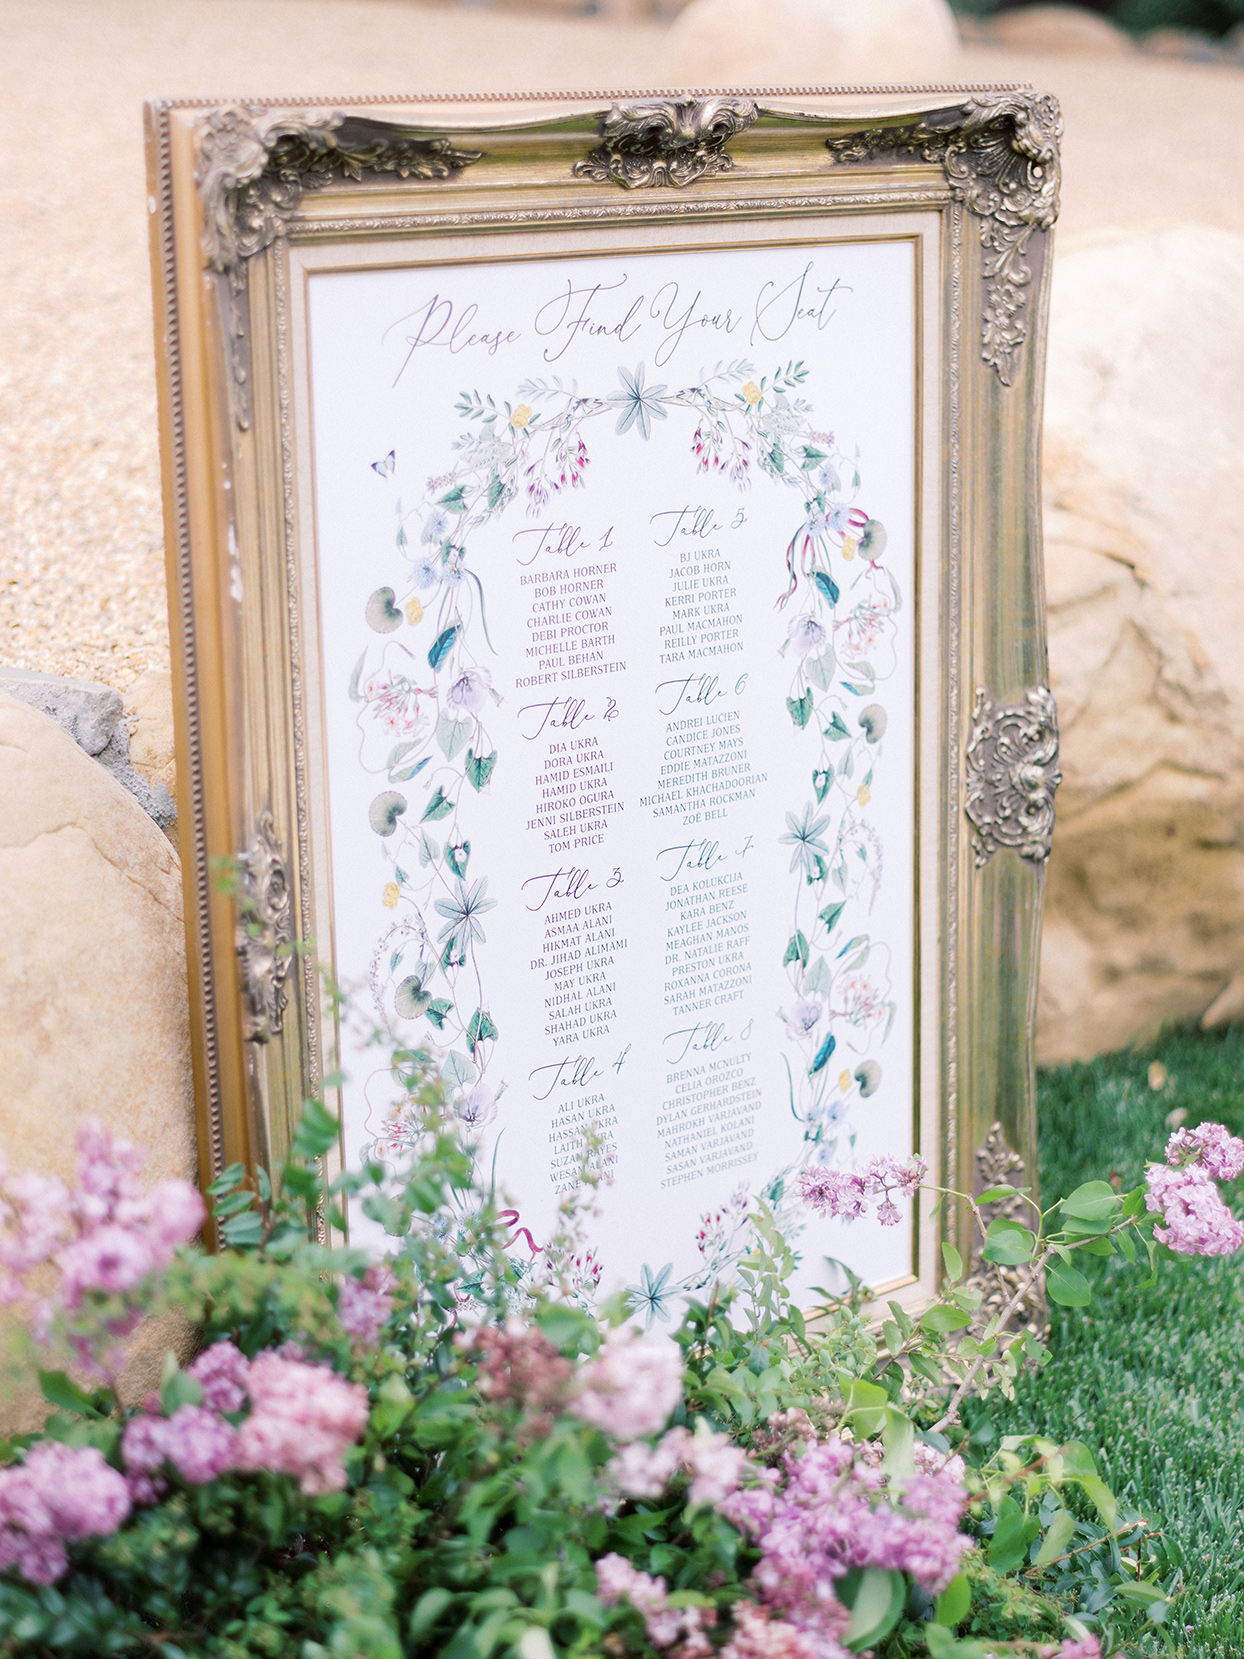 raina salih wedding framed seating chart